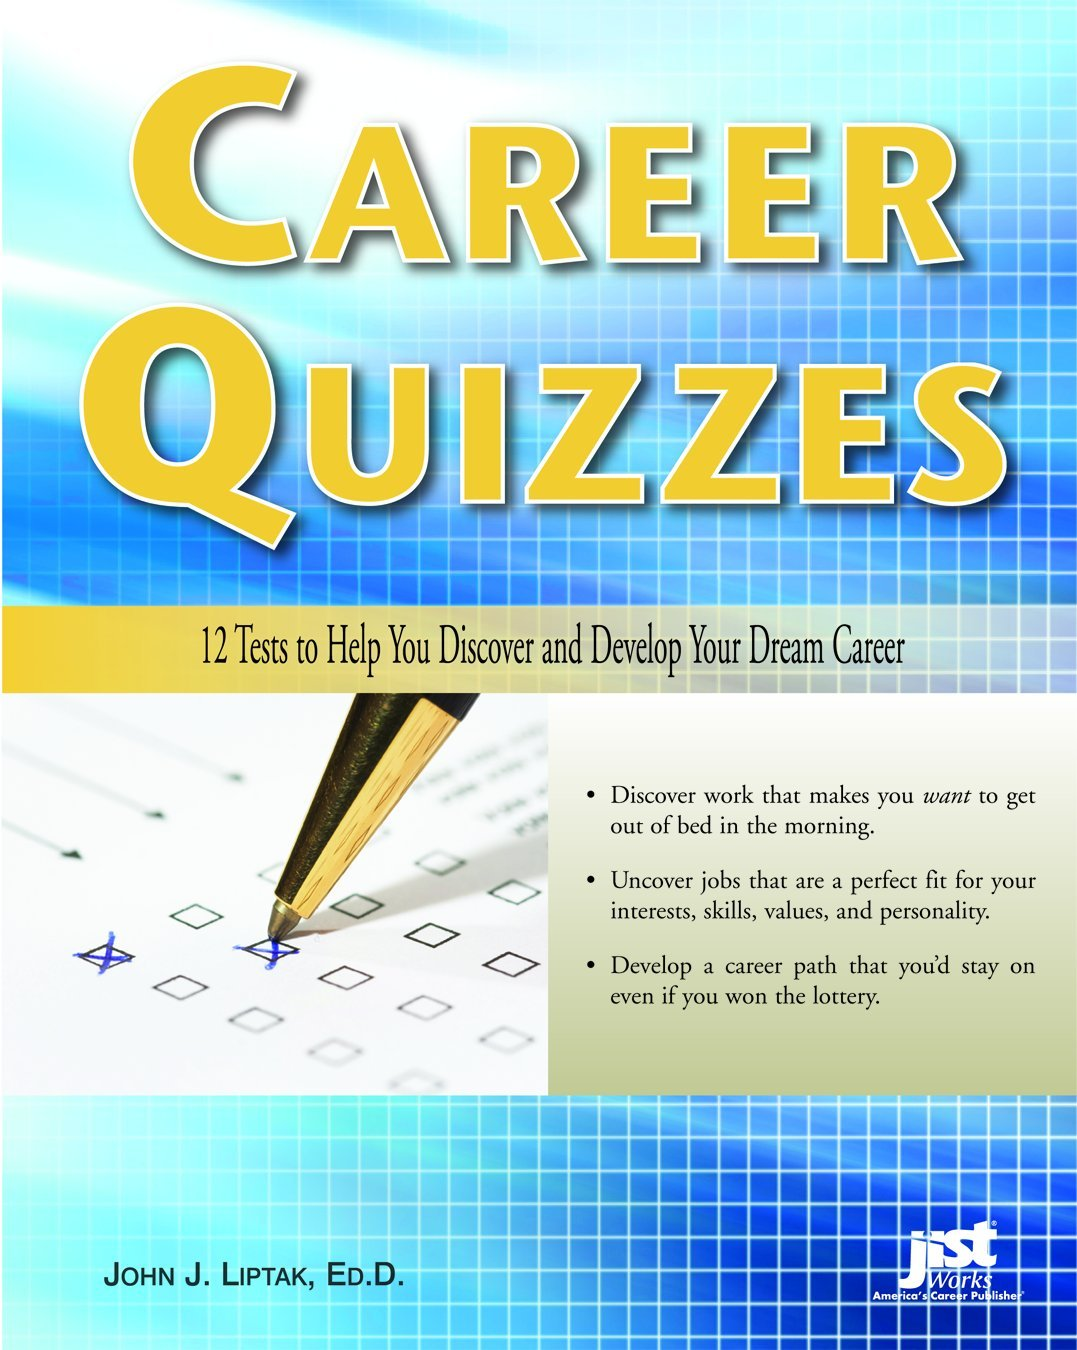 aptitude tests career aptitude test aptitude test  career quizzes 12 tests to help you discover and develop your